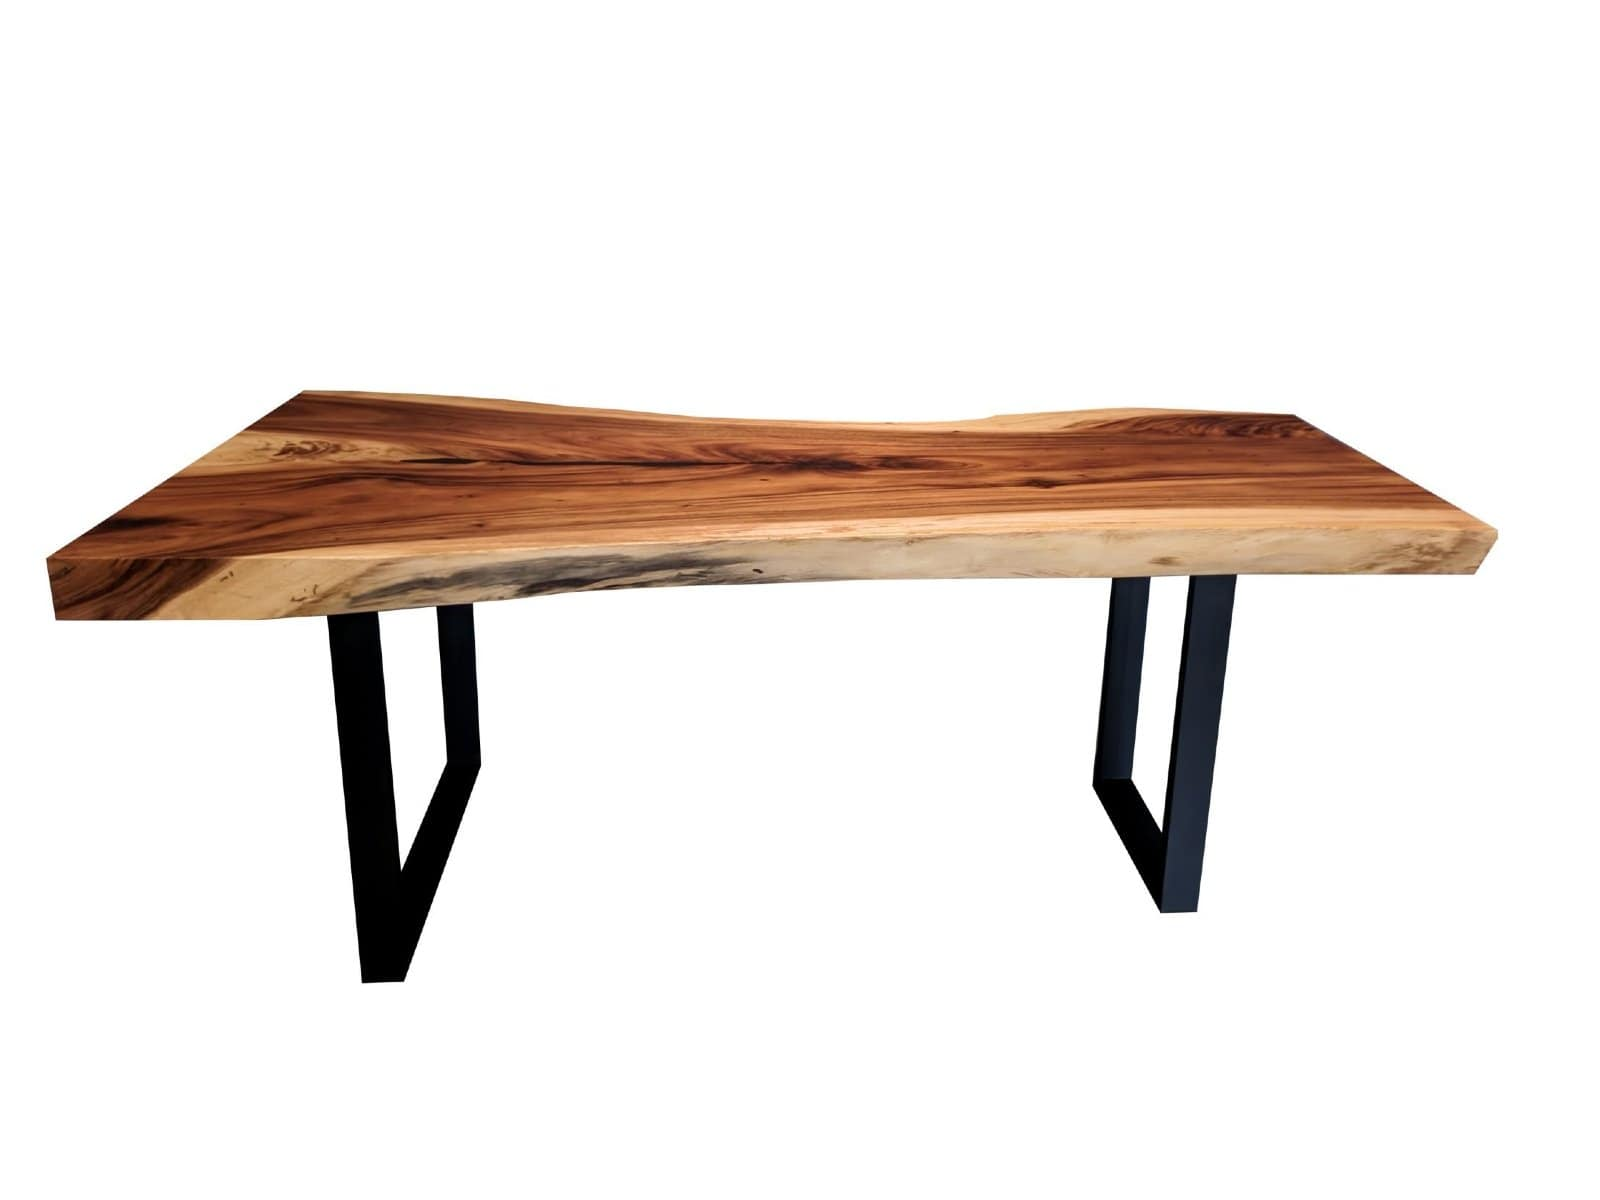 Natural Acacia Wood Table With Metal Legs